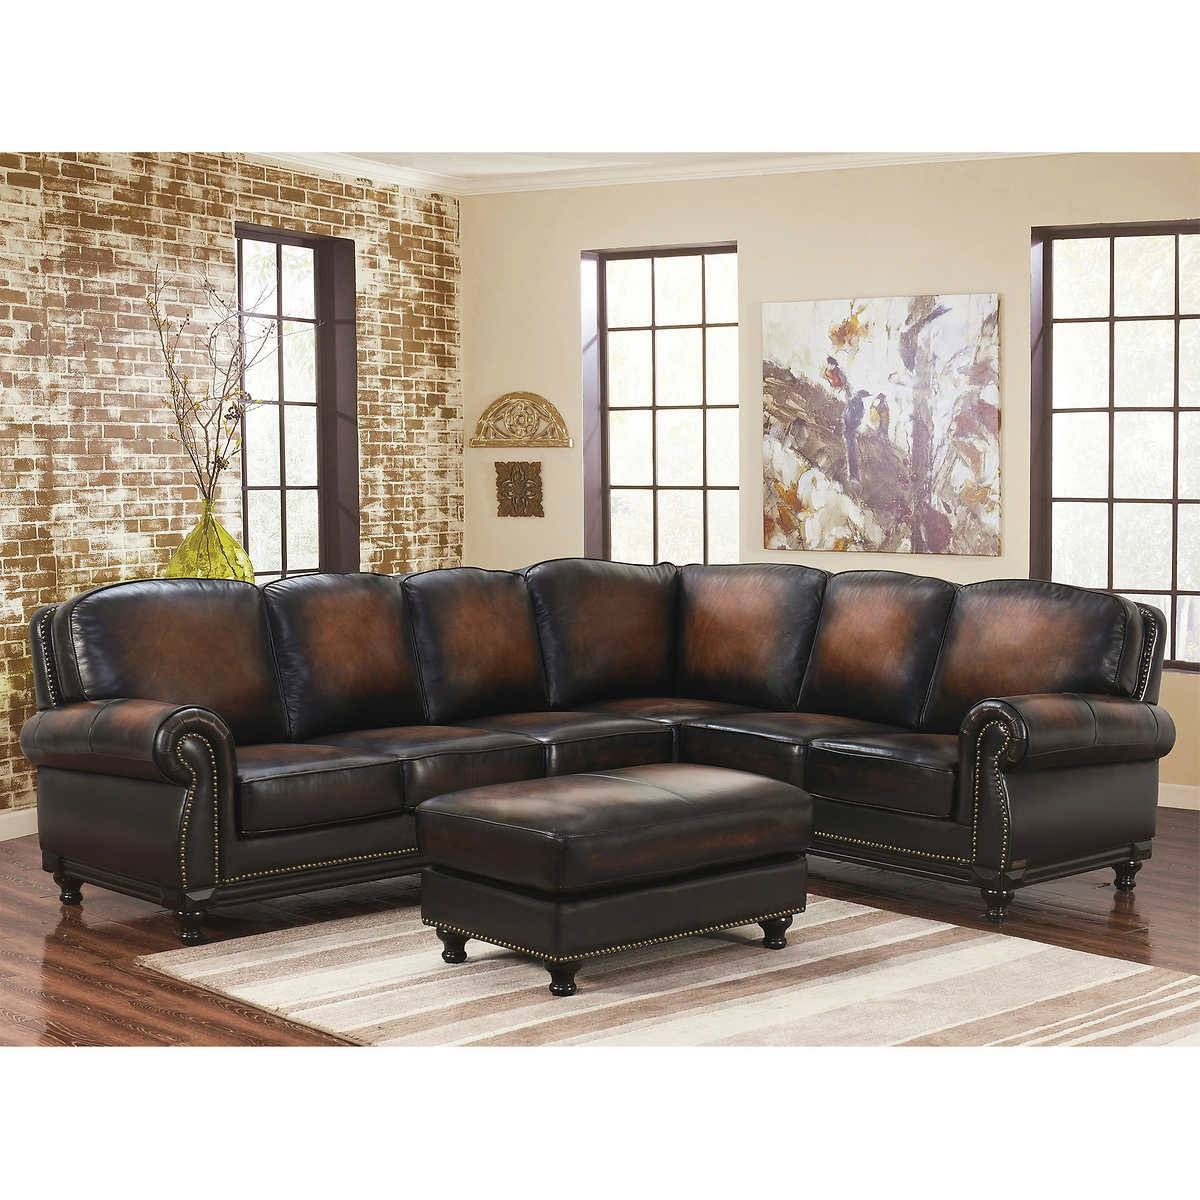 Glamorous Real Leather Sectional Sofa 23 For Your Ekornes inside Ekornes Sectional Sofa (Image 18 of 30)